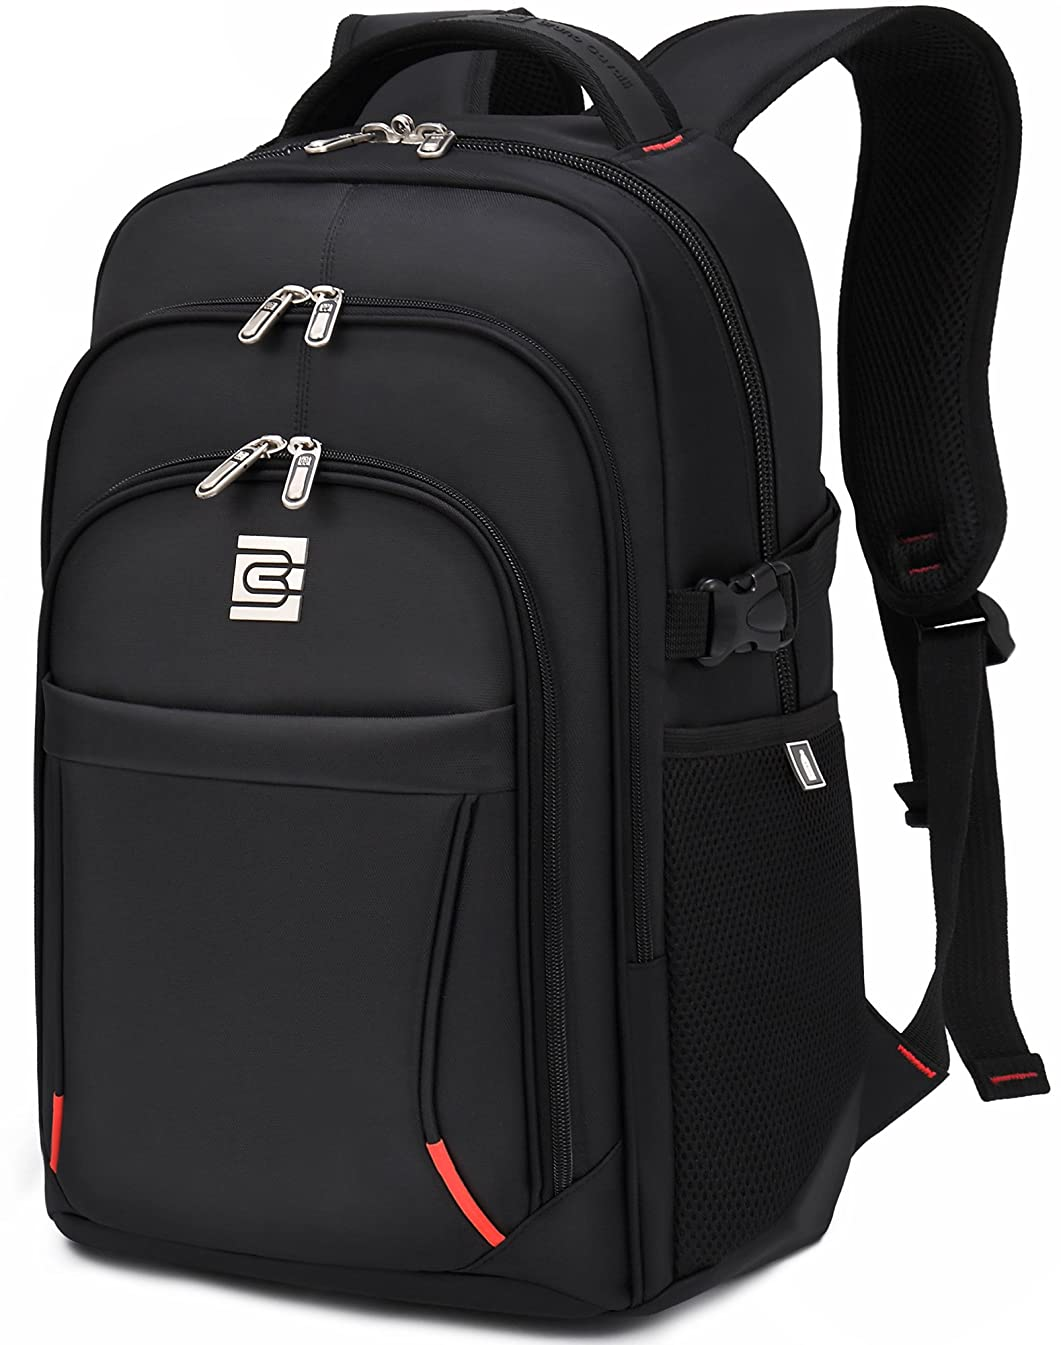 VEVESMUNDO Laptop Backpack 15.6 16 17 INCH College School Travel Business Outdoor Waterproof Daypack for Dell HP Lenovo MacBook Acer Men (16 INCH Backpack)